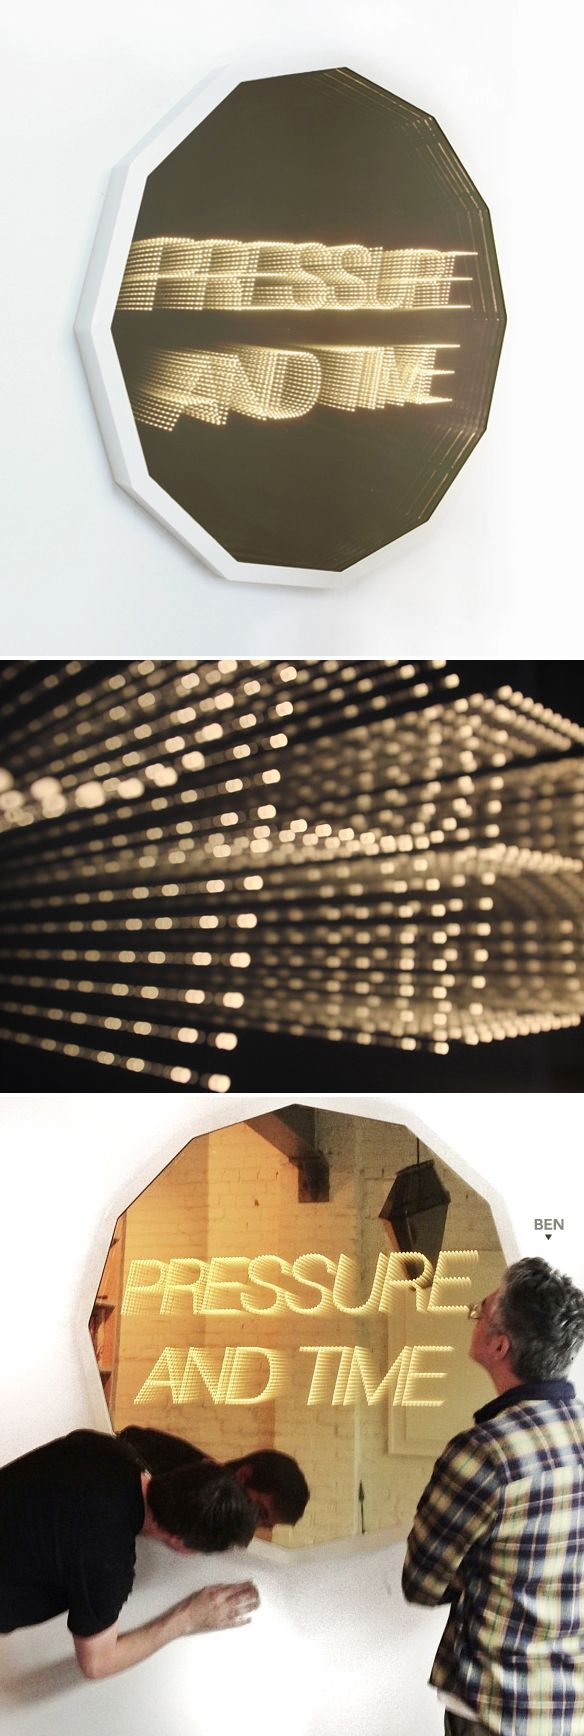 Mirror, mirror on the wall, who's the brightest of them all? The amount of detail that goes into this is astounding.  http://www.flashingblinkylights.com/light-up-products/craft-lights/blinkies-round-leds.html